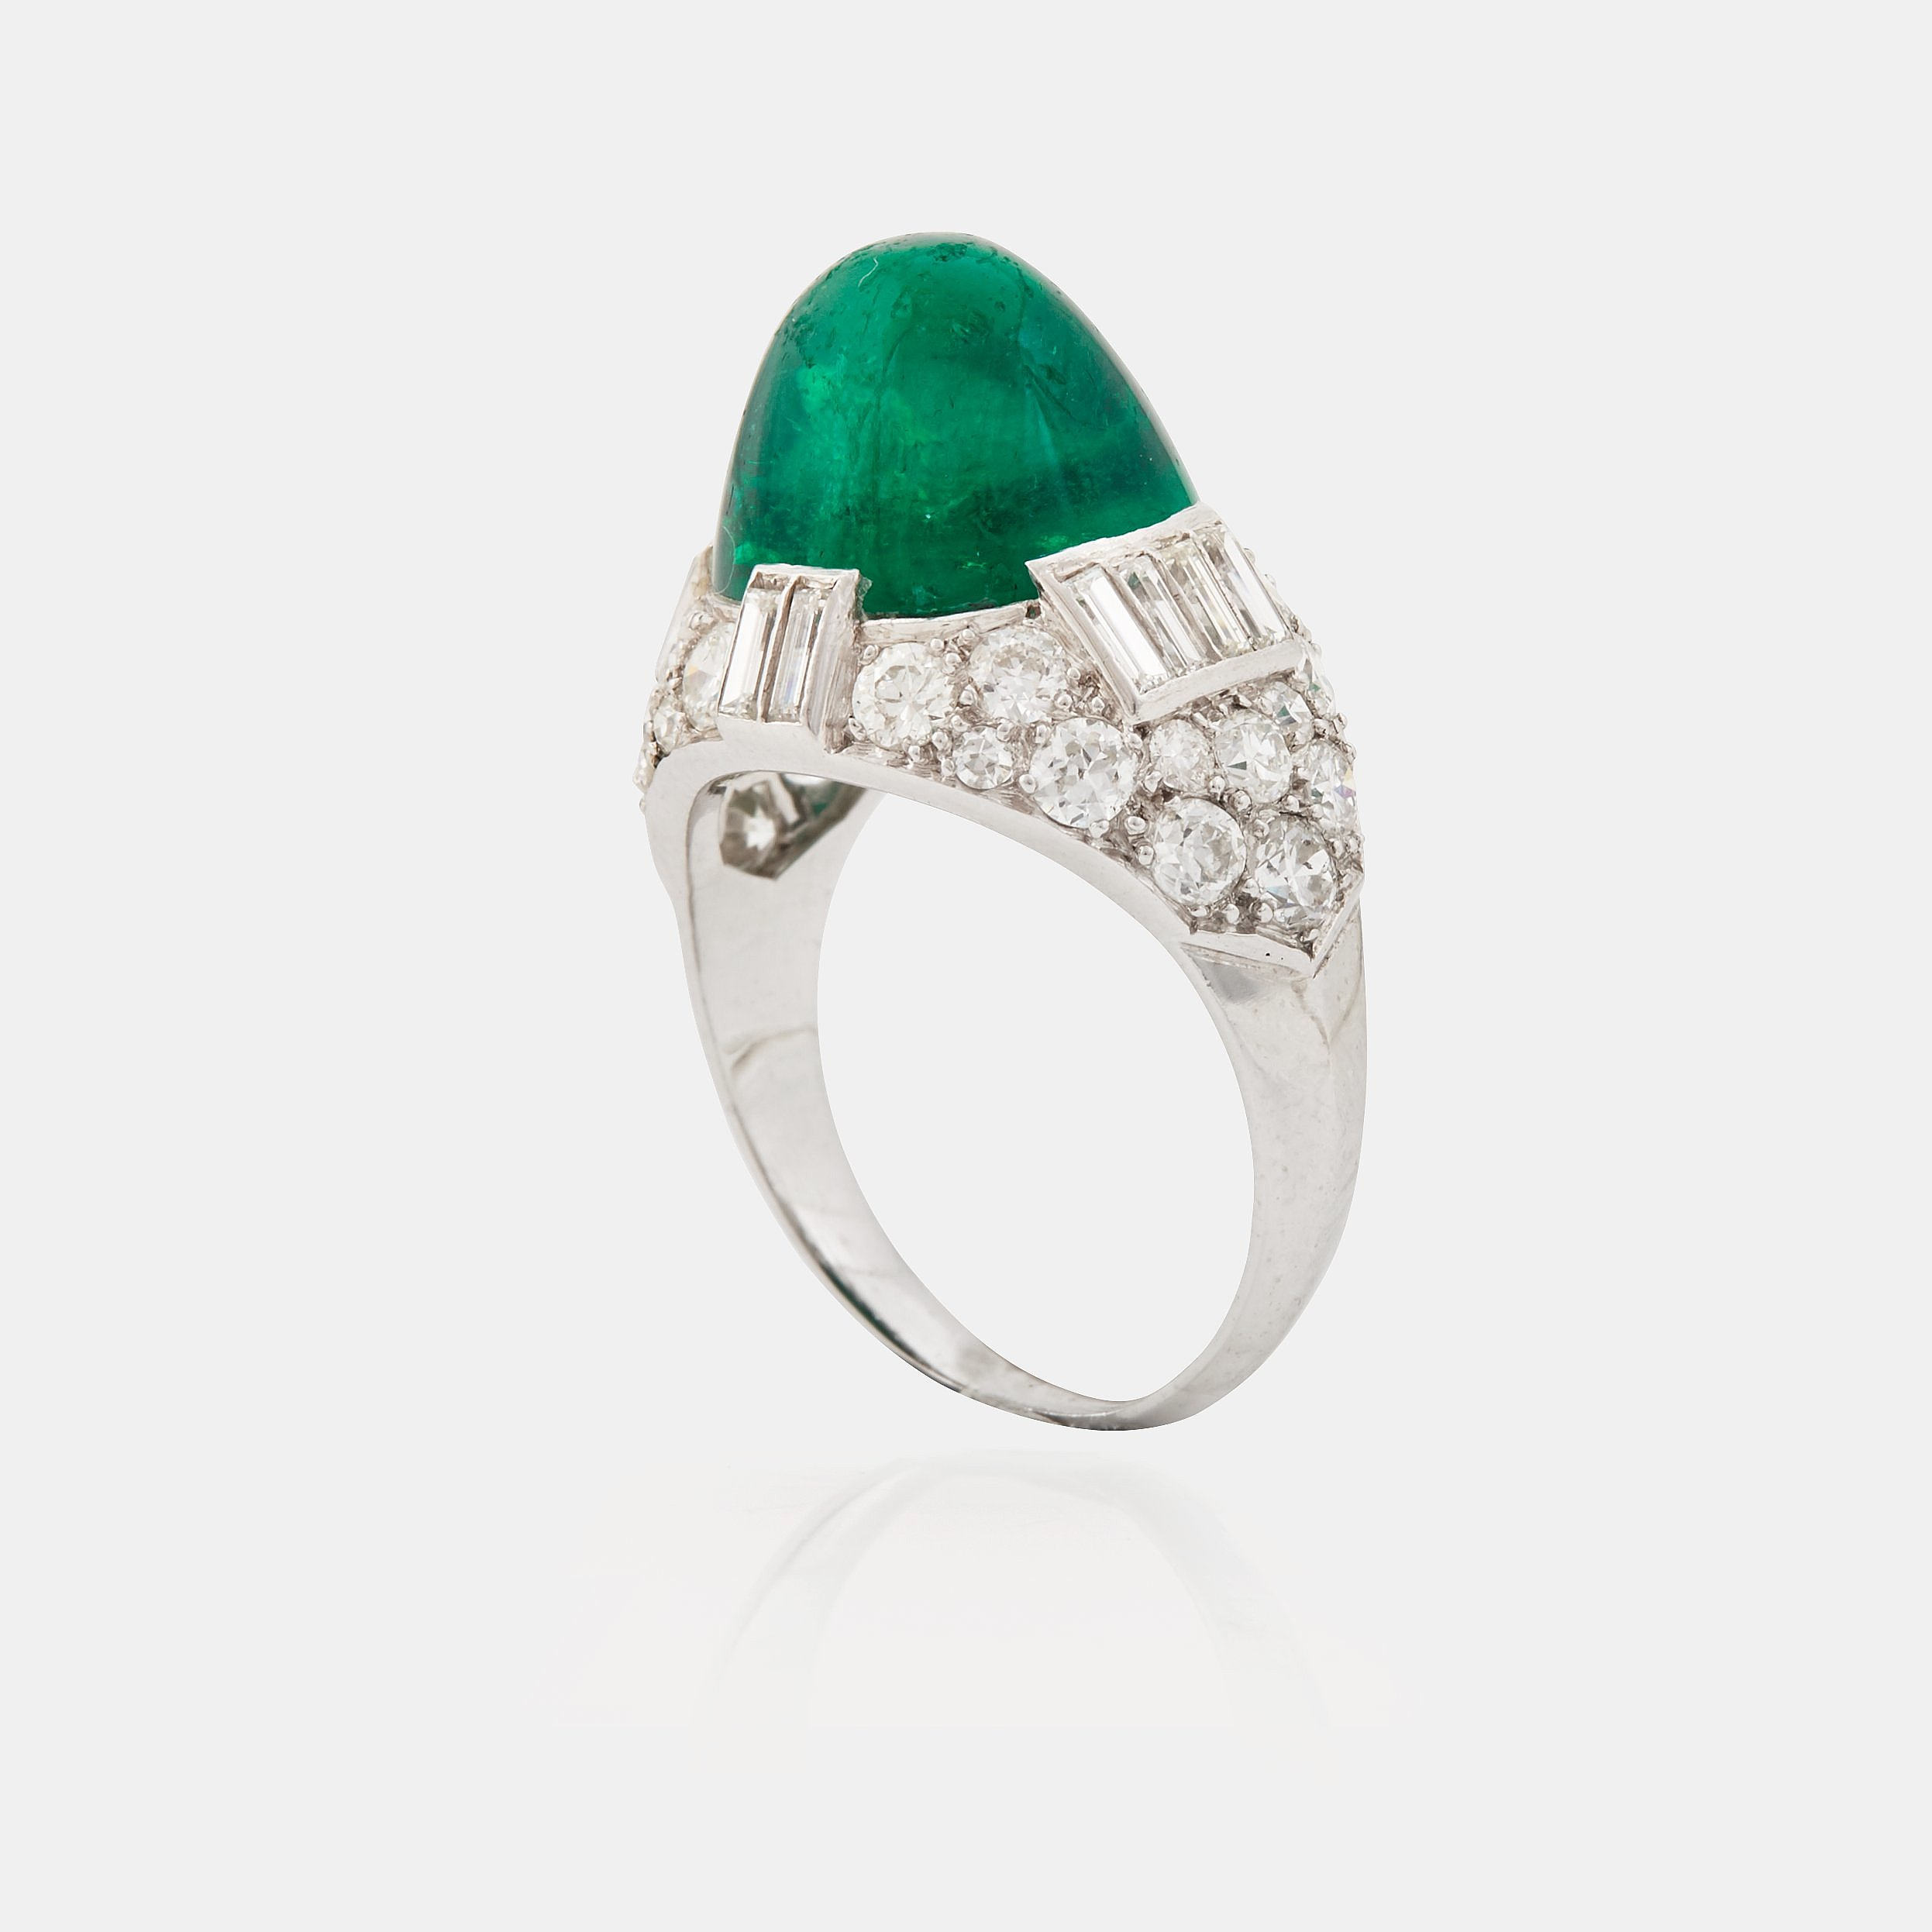 and in emerald yellow brilliant gems bashinski ring srk prk product diamonds fine gold cut jewelry round